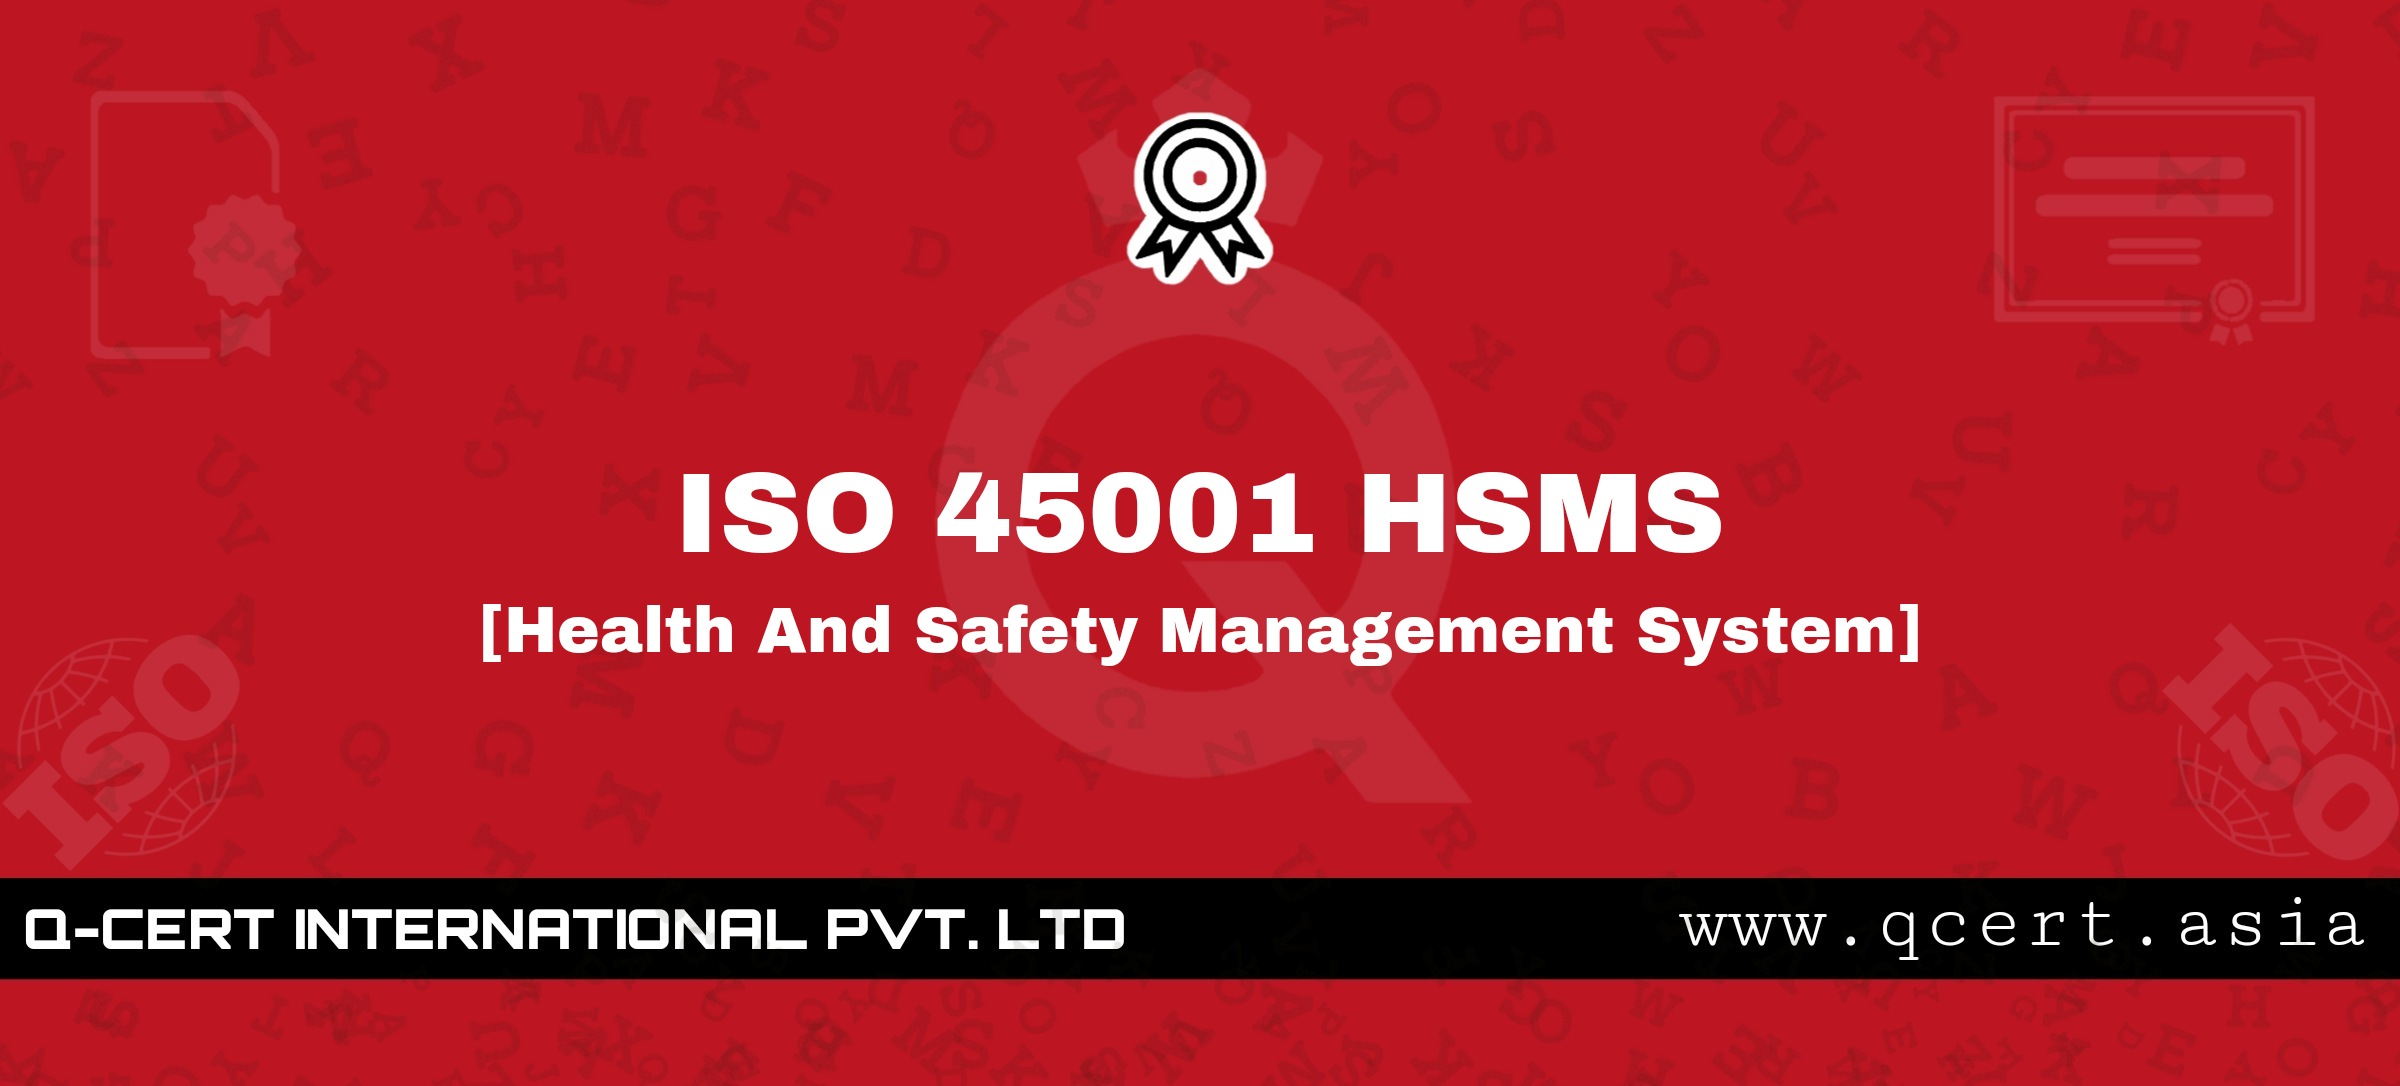 iso-45001-hsms-healt-and-safety-management-system-qcert-international